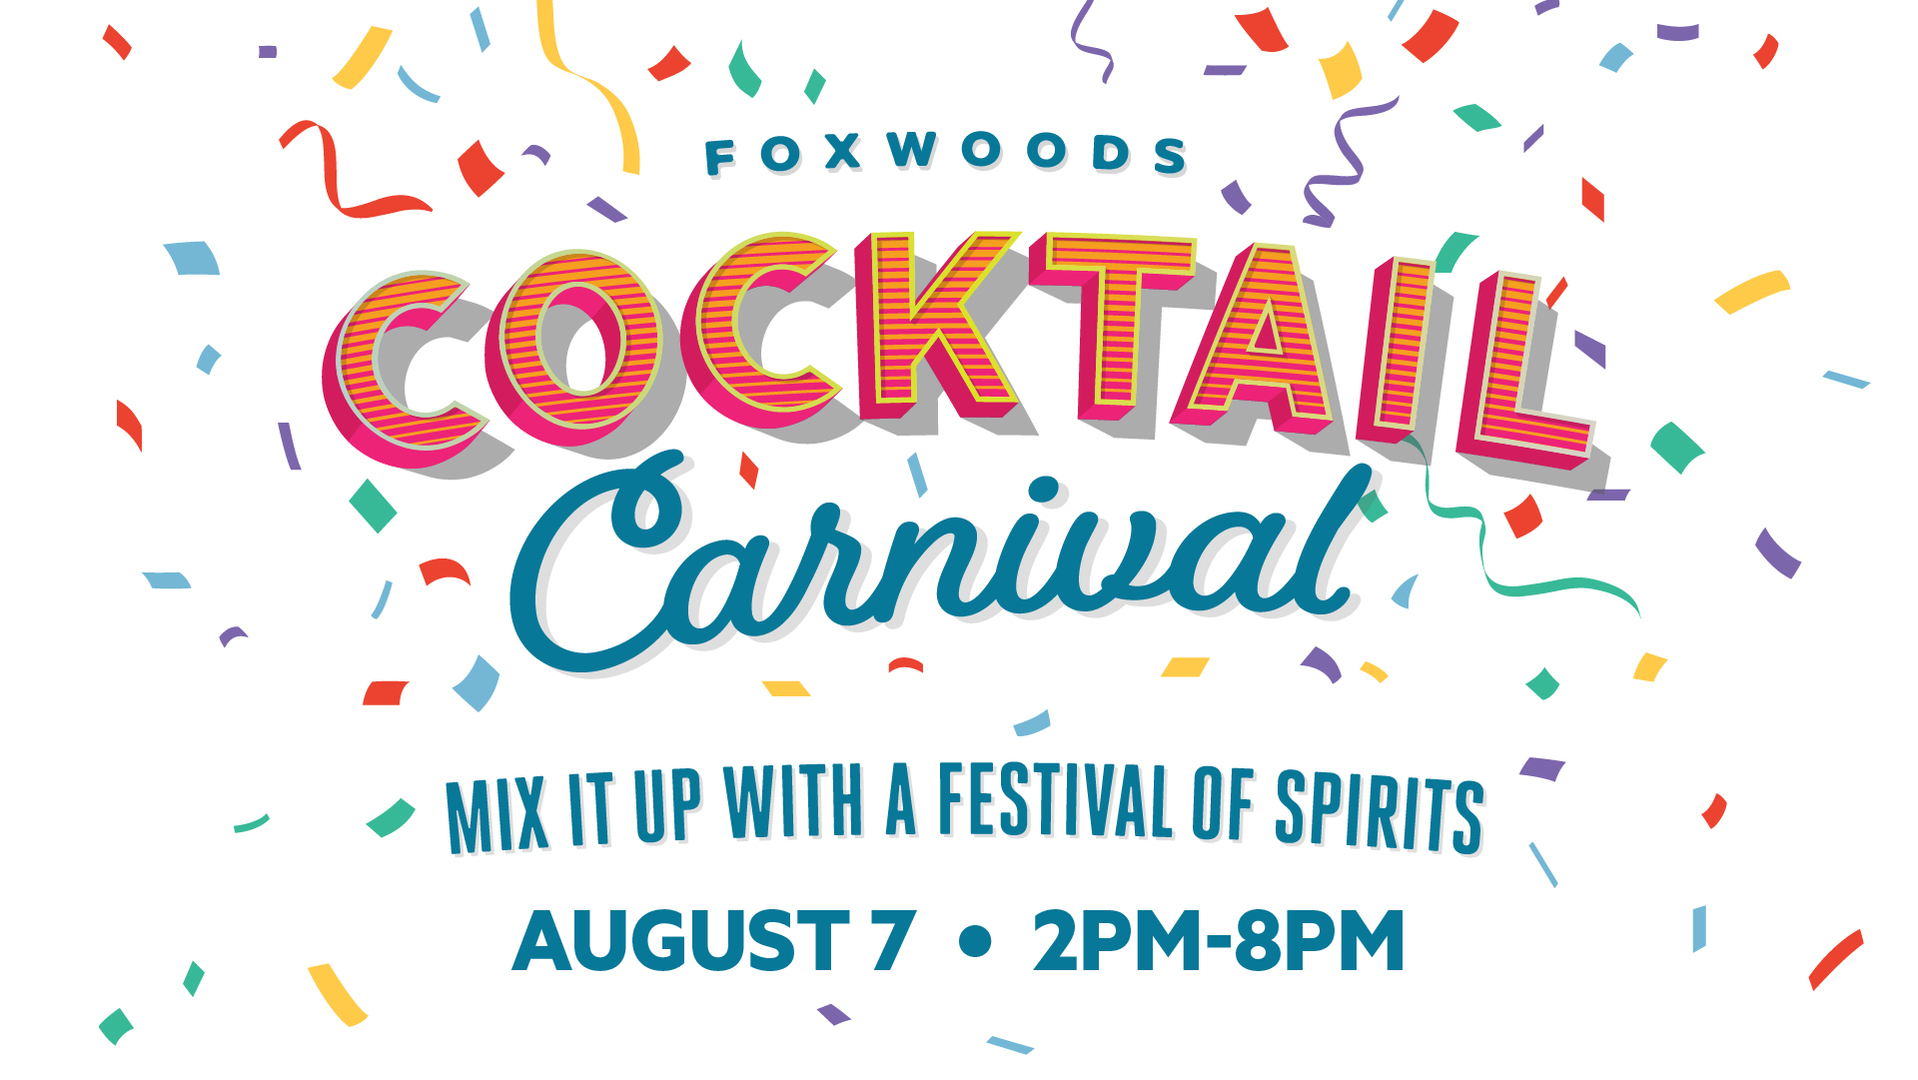 Foxwoods Cocktail Carnival